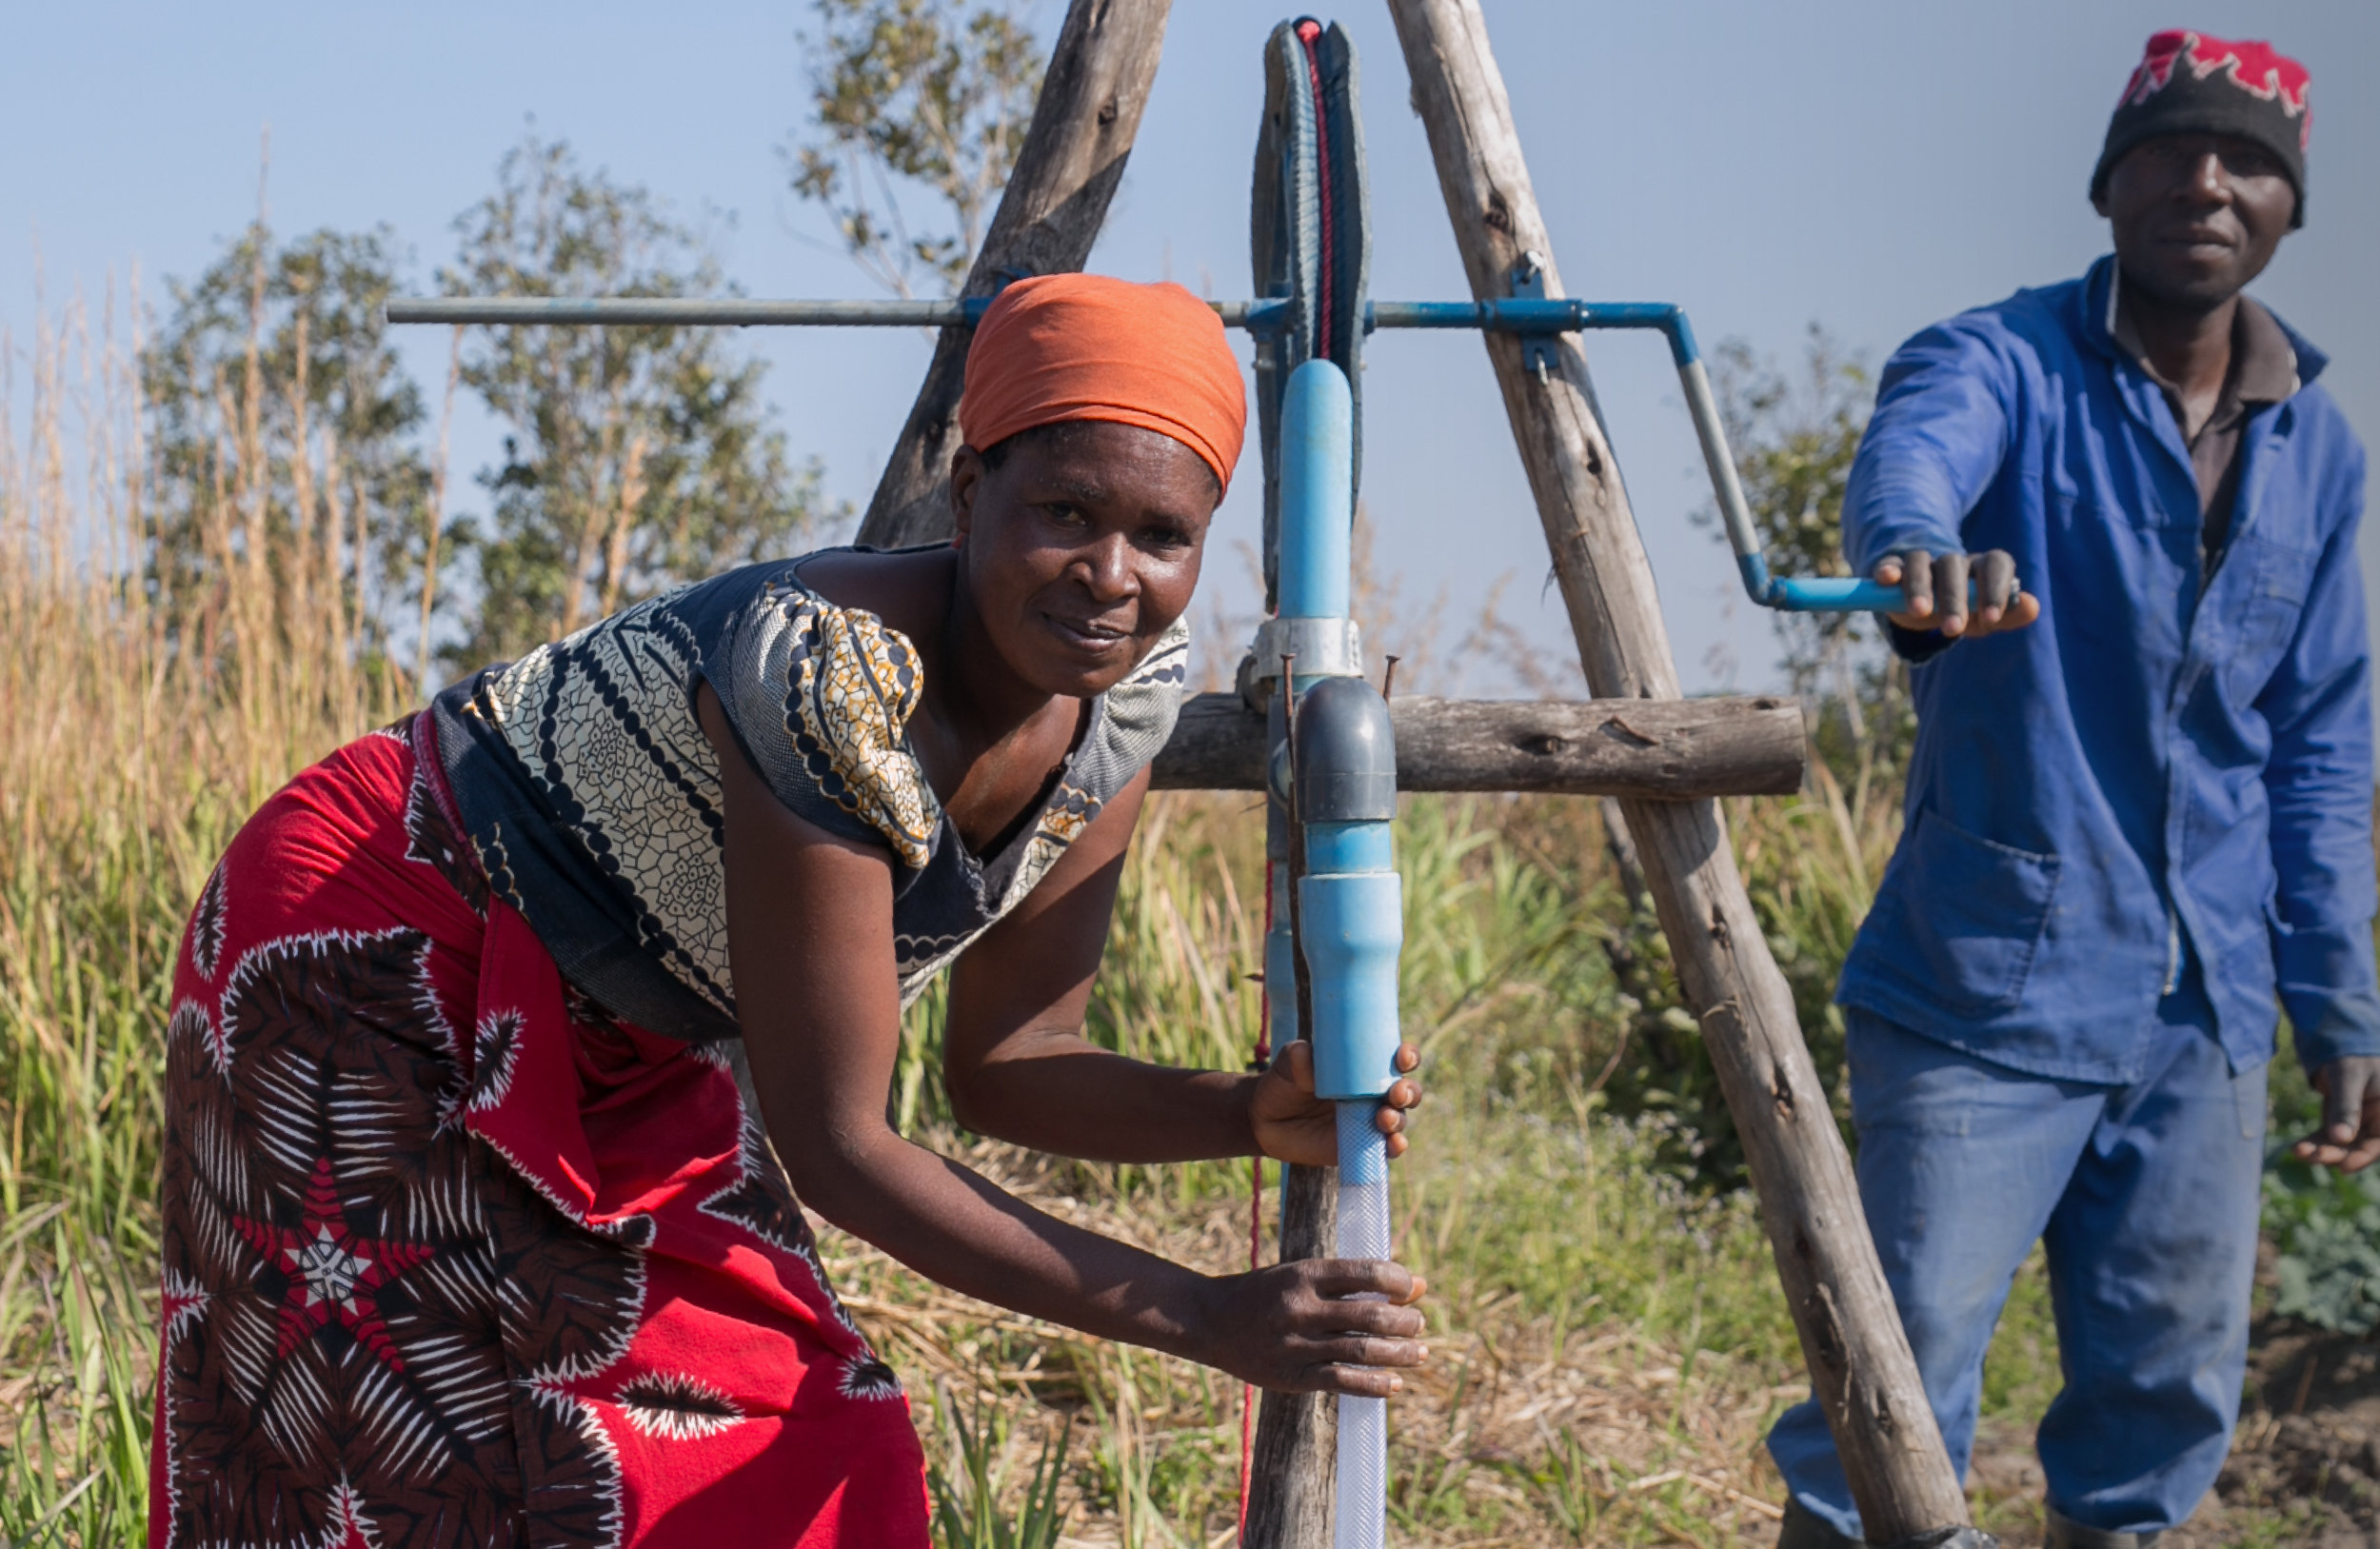 I'm cultivatingchange - Malawi's small-scale farmers know they need to regularly water their crops, but the treadle pump Memory and her husband were given just wasn't suited to their needs; the water pressure was hard to control and they couldn't use it to water their seedlings. So she used their savings to buy a locally made rope and washer pump which not only increased their productivity, it recouped its cost within a year.